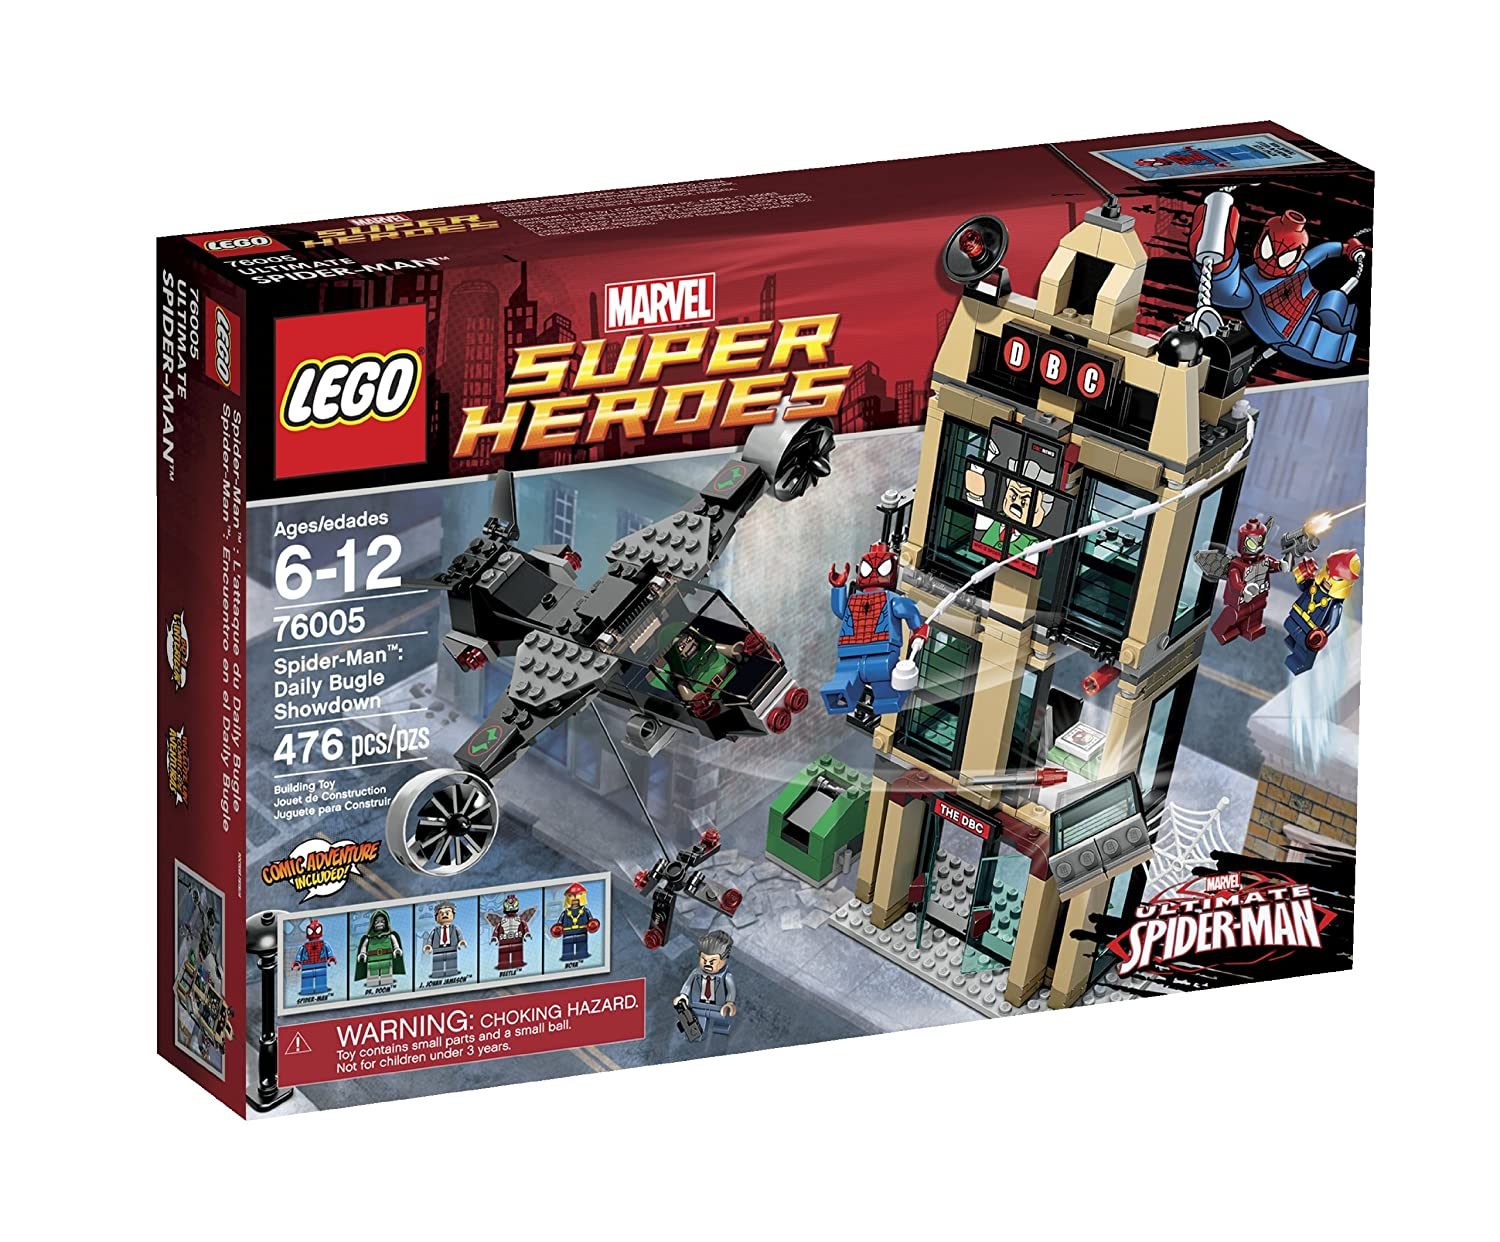 LEGO Super Heroes Daily Bugle Showdown